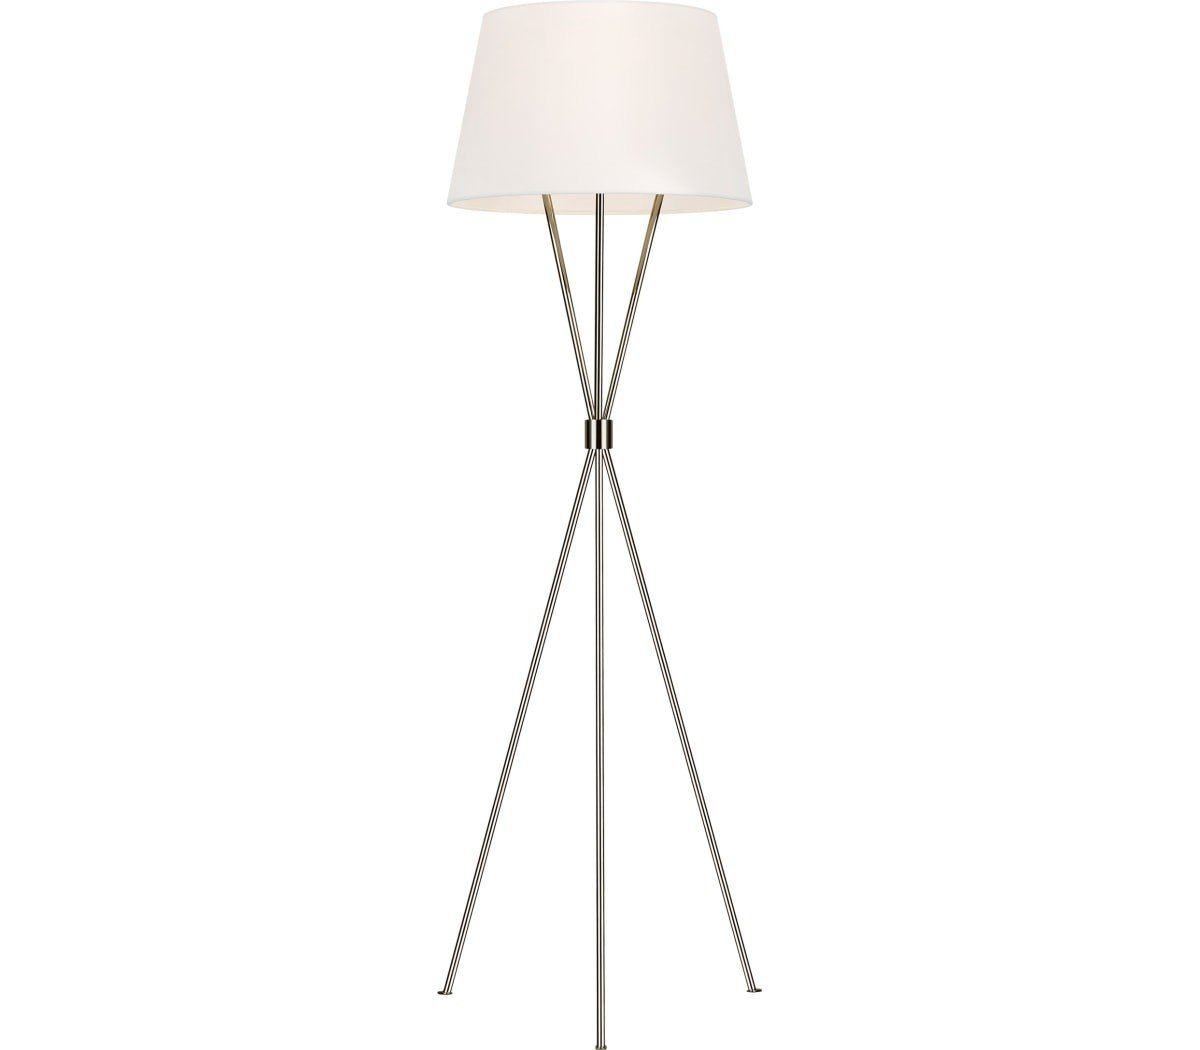 murray feiss penny feiss-penny-lamp-1